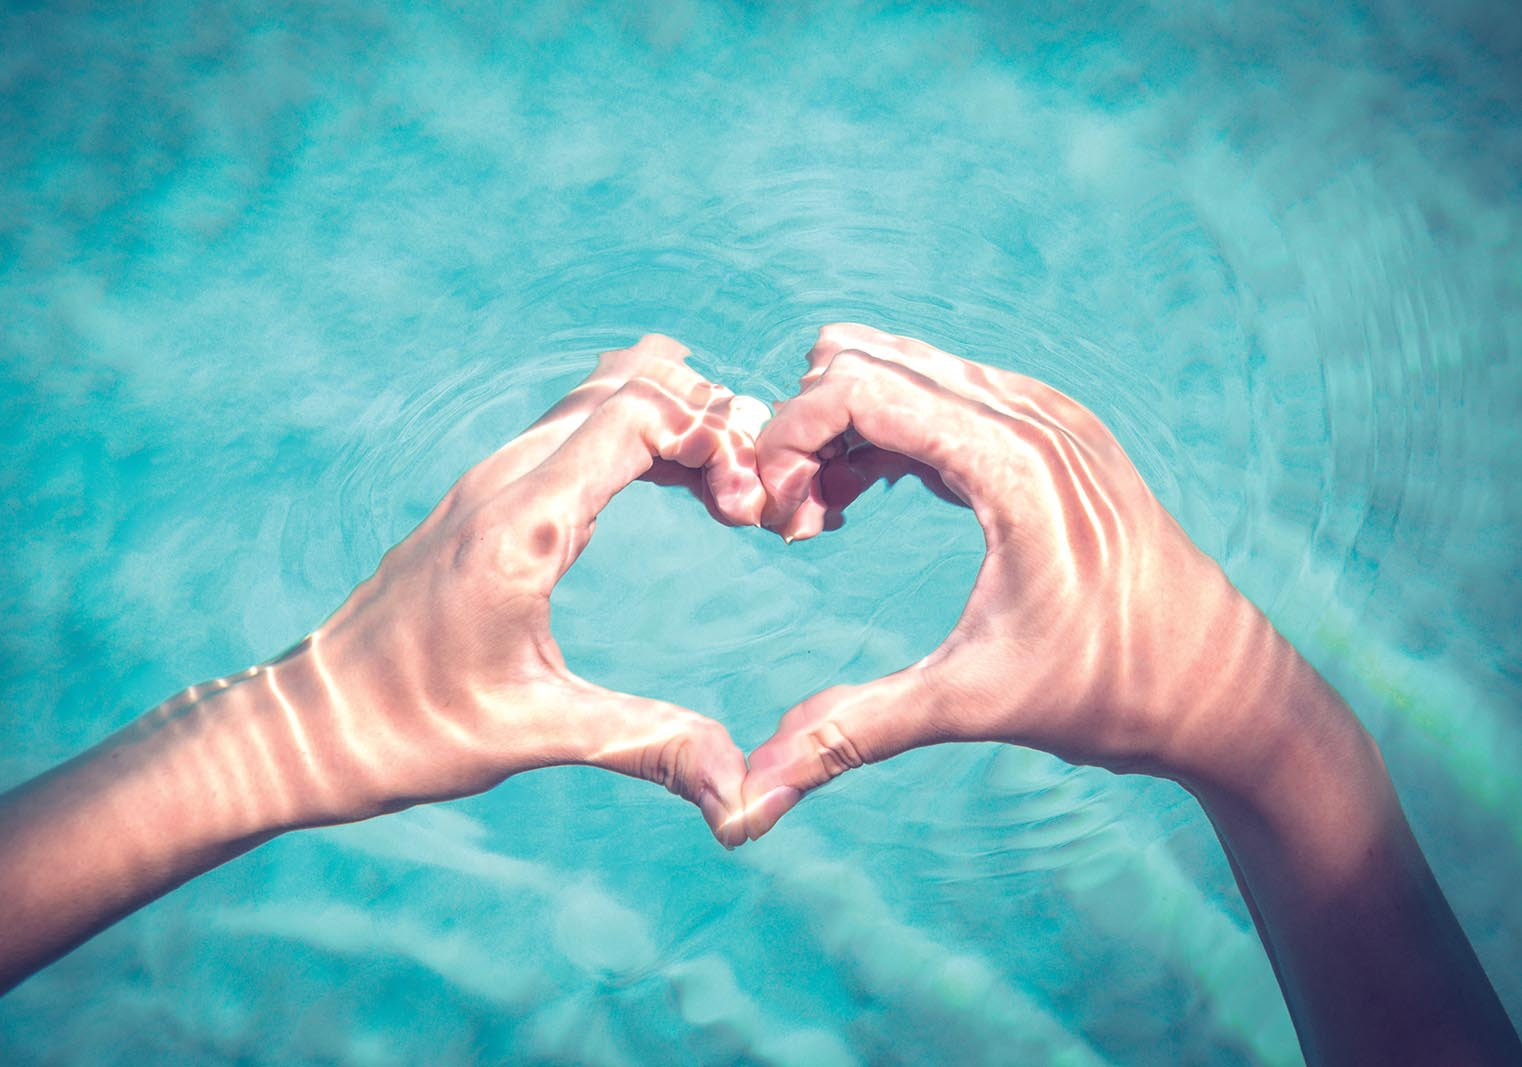 Hands in the shape of a heart over a pool | Bayberry at The Groves in Whittier, CA | Brookfield Residential